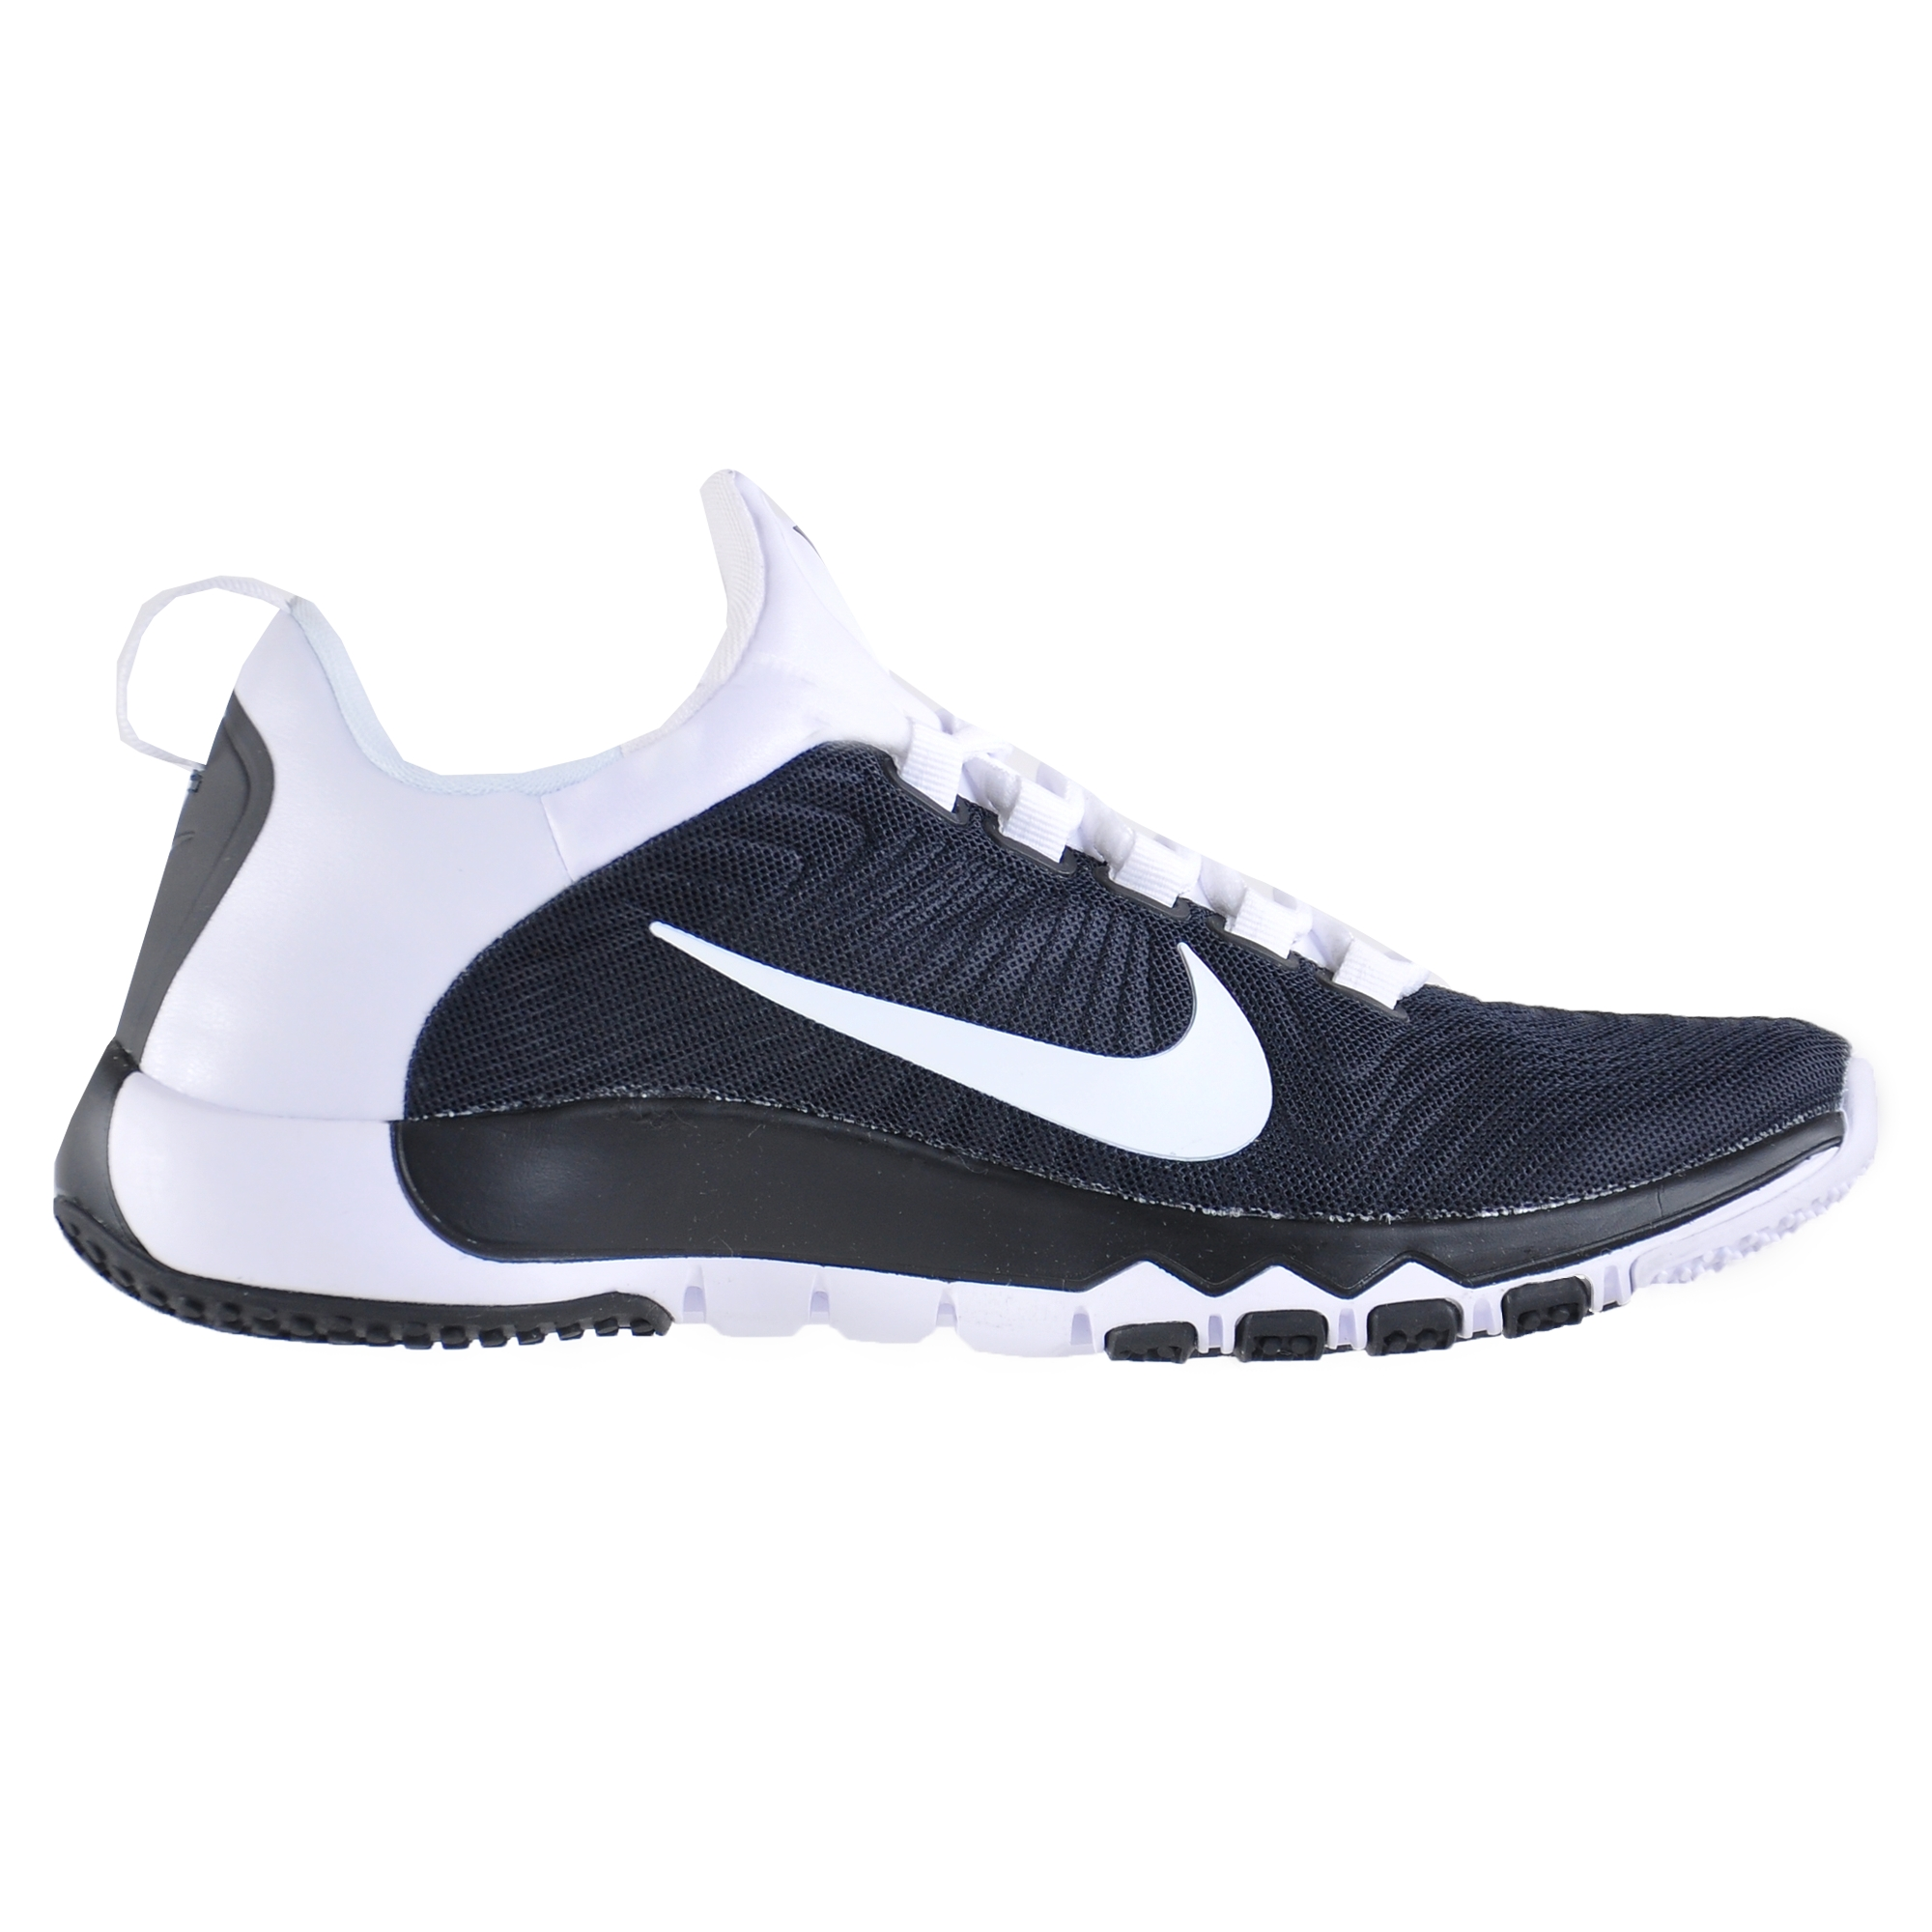 nike free trainer 5 0 v5 erkek spor ayakkab 644671 010. Black Bedroom Furniture Sets. Home Design Ideas